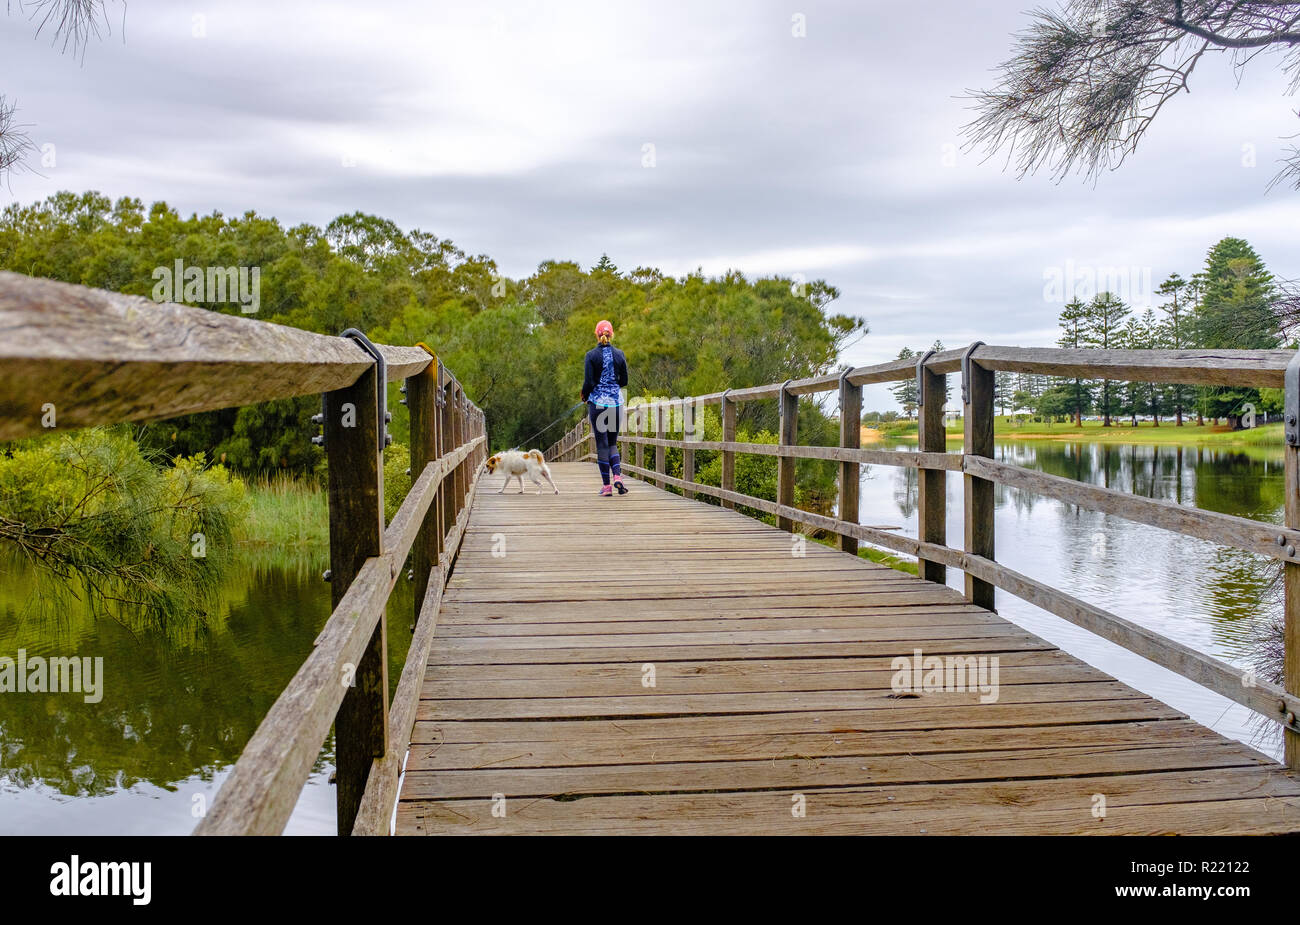 Rear view of Woman in sports lifestyle clothing outside enjoying unplugged me time walking away with small dog on rustic wooden bridge across river. - Stock Image